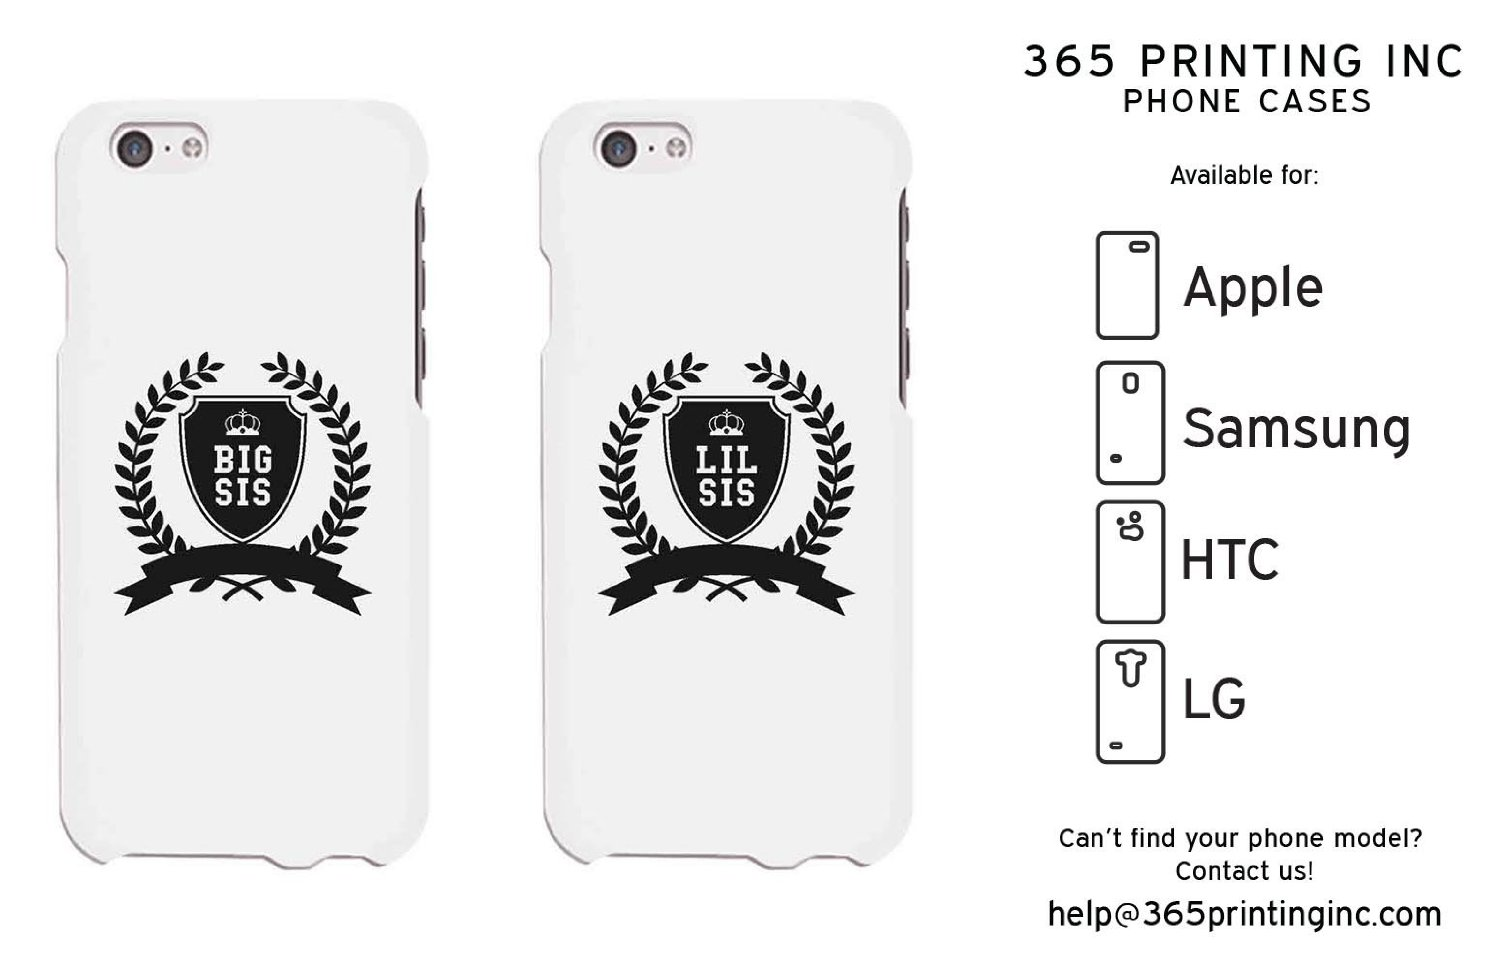 Amazon.com: Matching Phone Cases For Sisters - iPhone 4~6P, Galaxy S3~6, Note4, G3, HTC M8: Cell Phones & Accessories